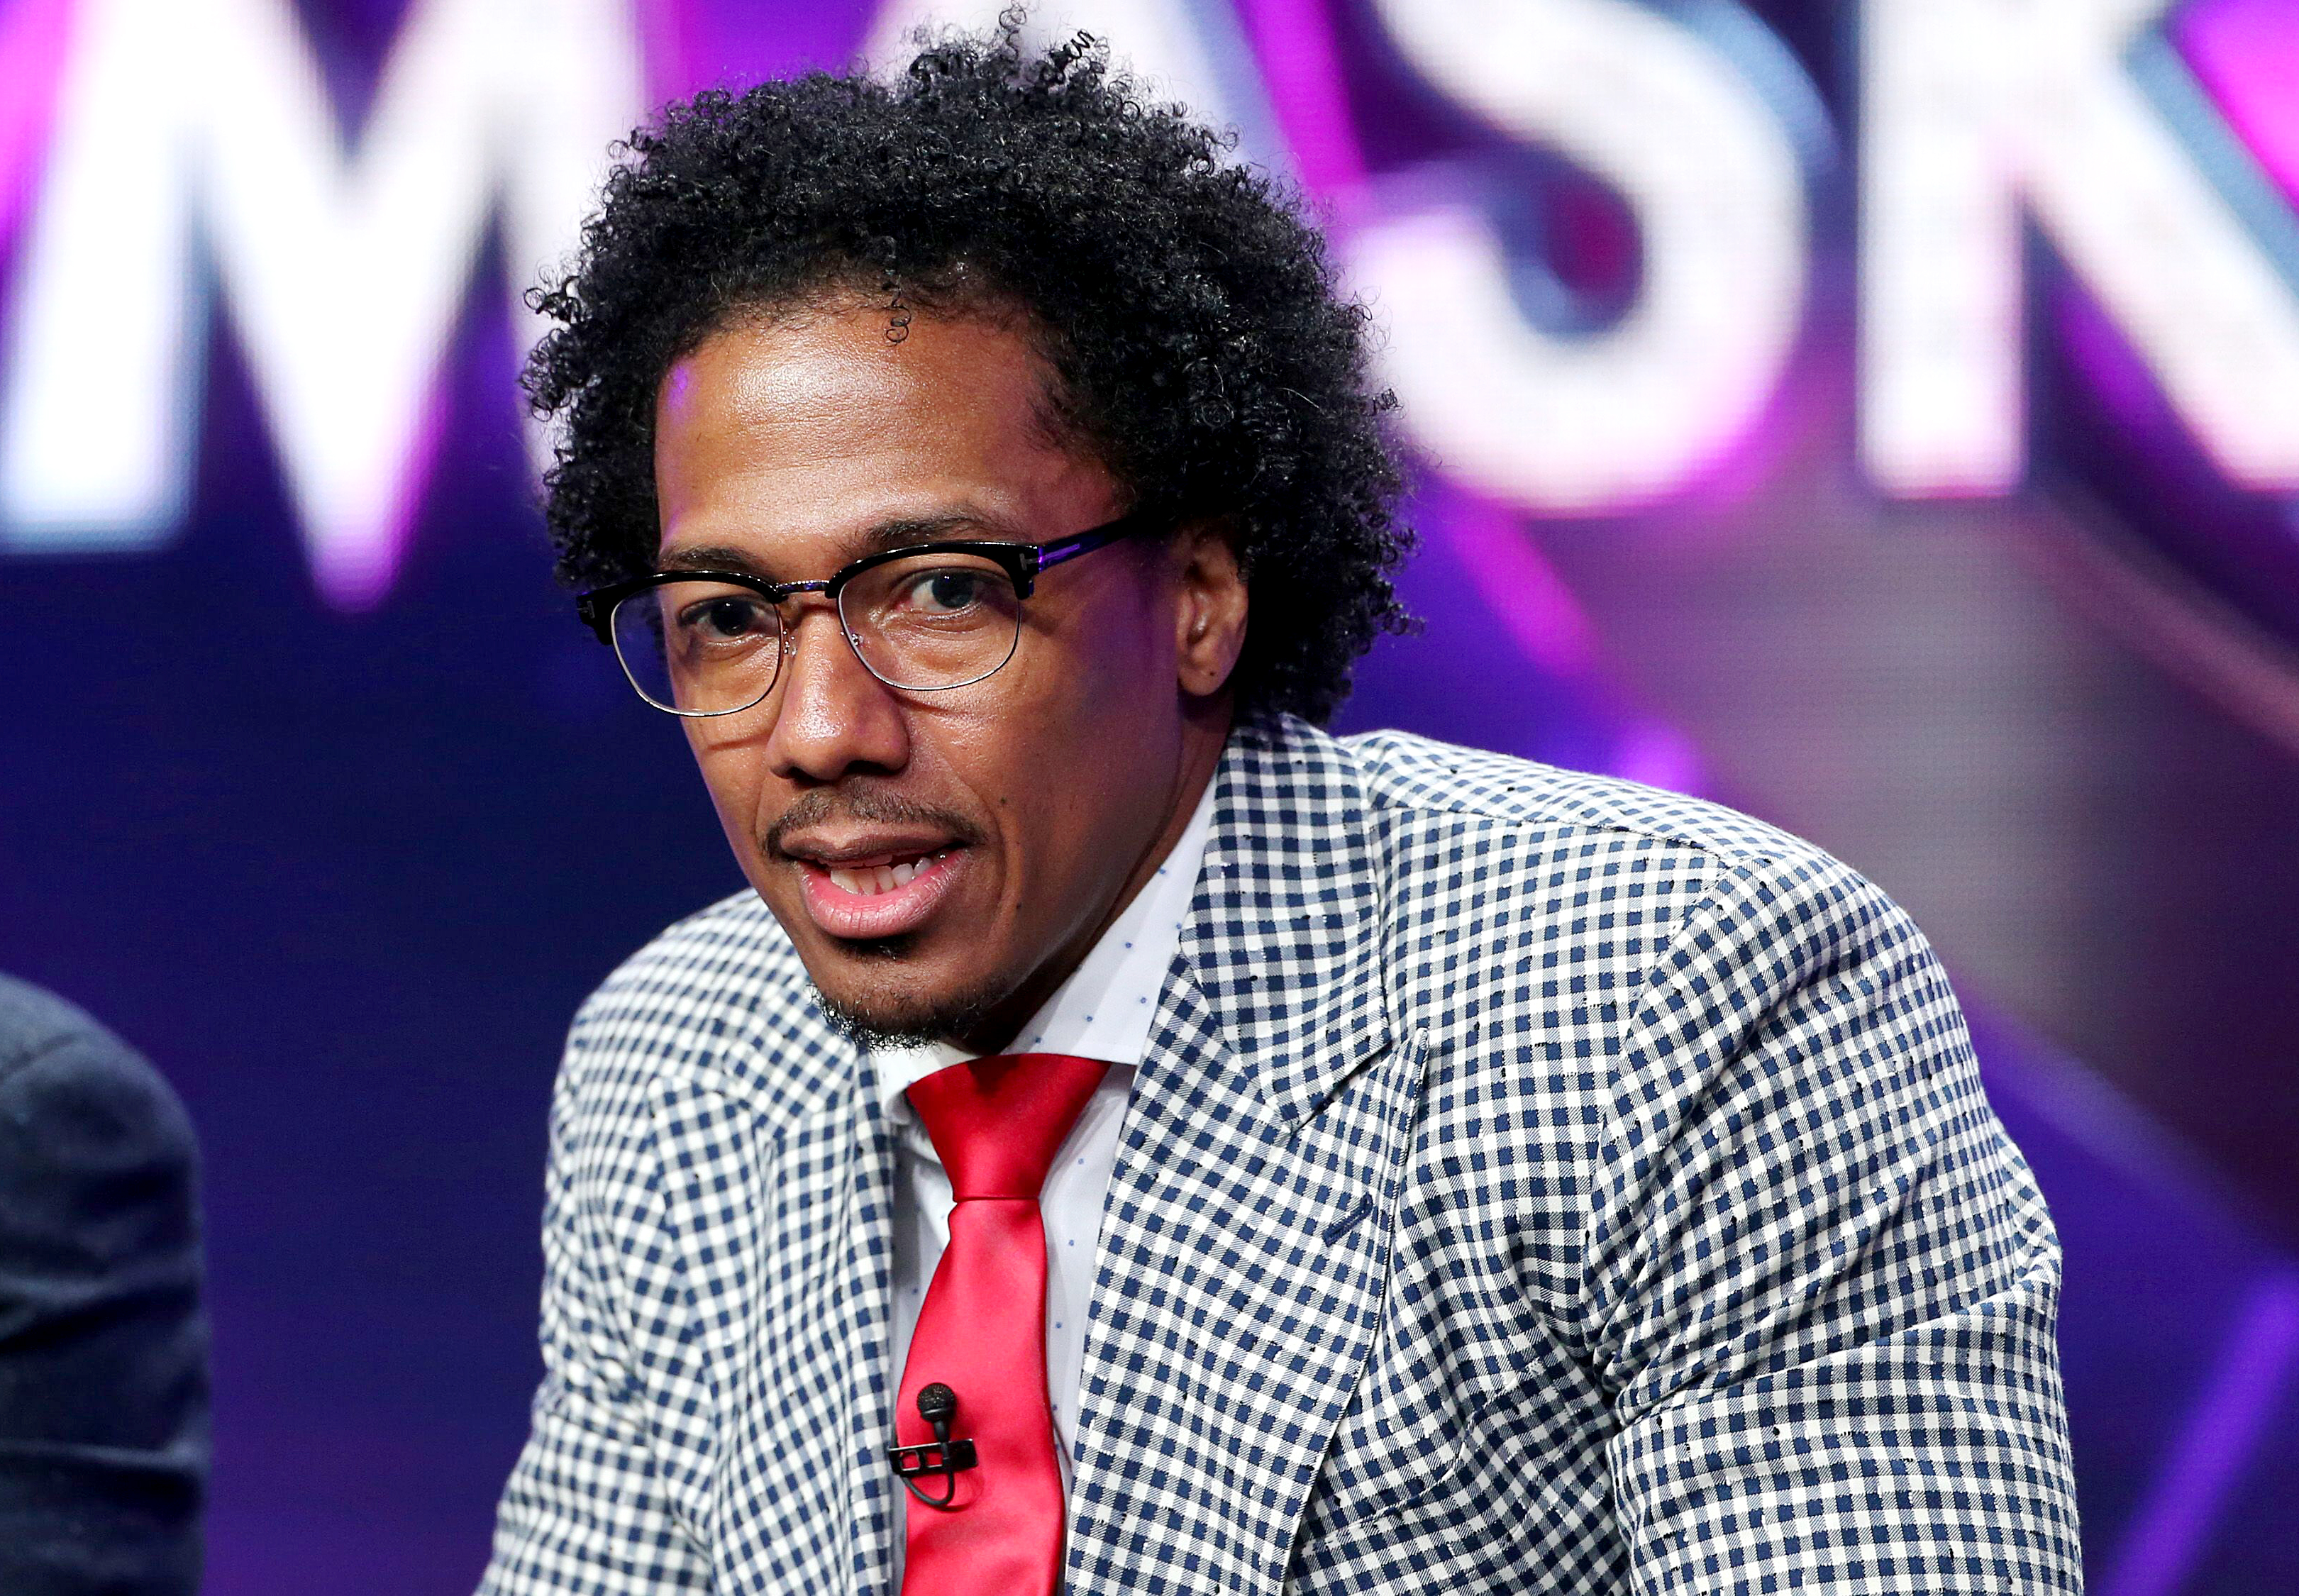 Nick Cannon's Dilemma Exposes the Problem of Not Owning Black Media